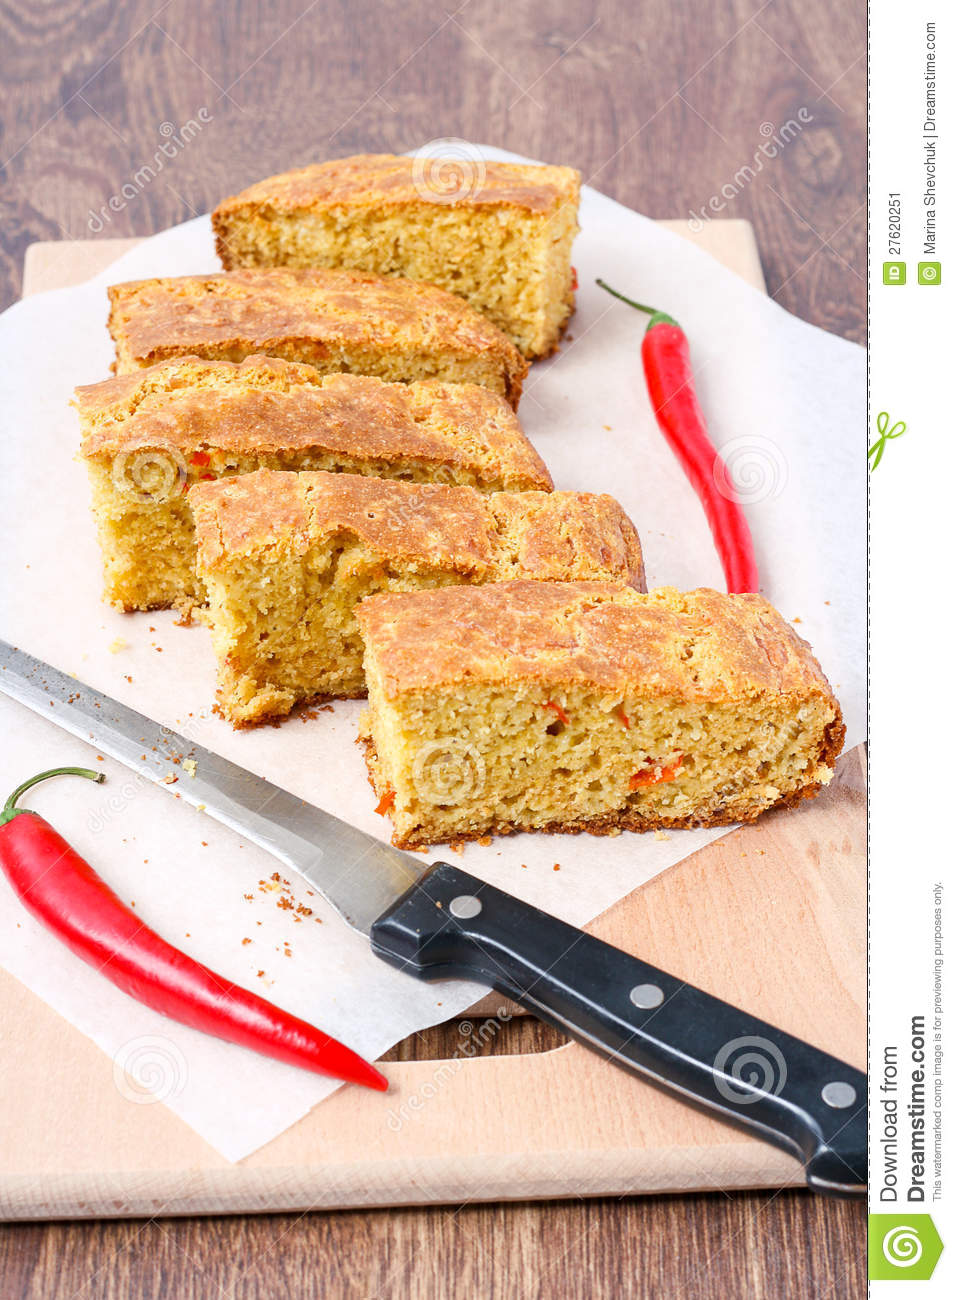 Chile Cheese Cornbread Stock Image - Image: 27620251